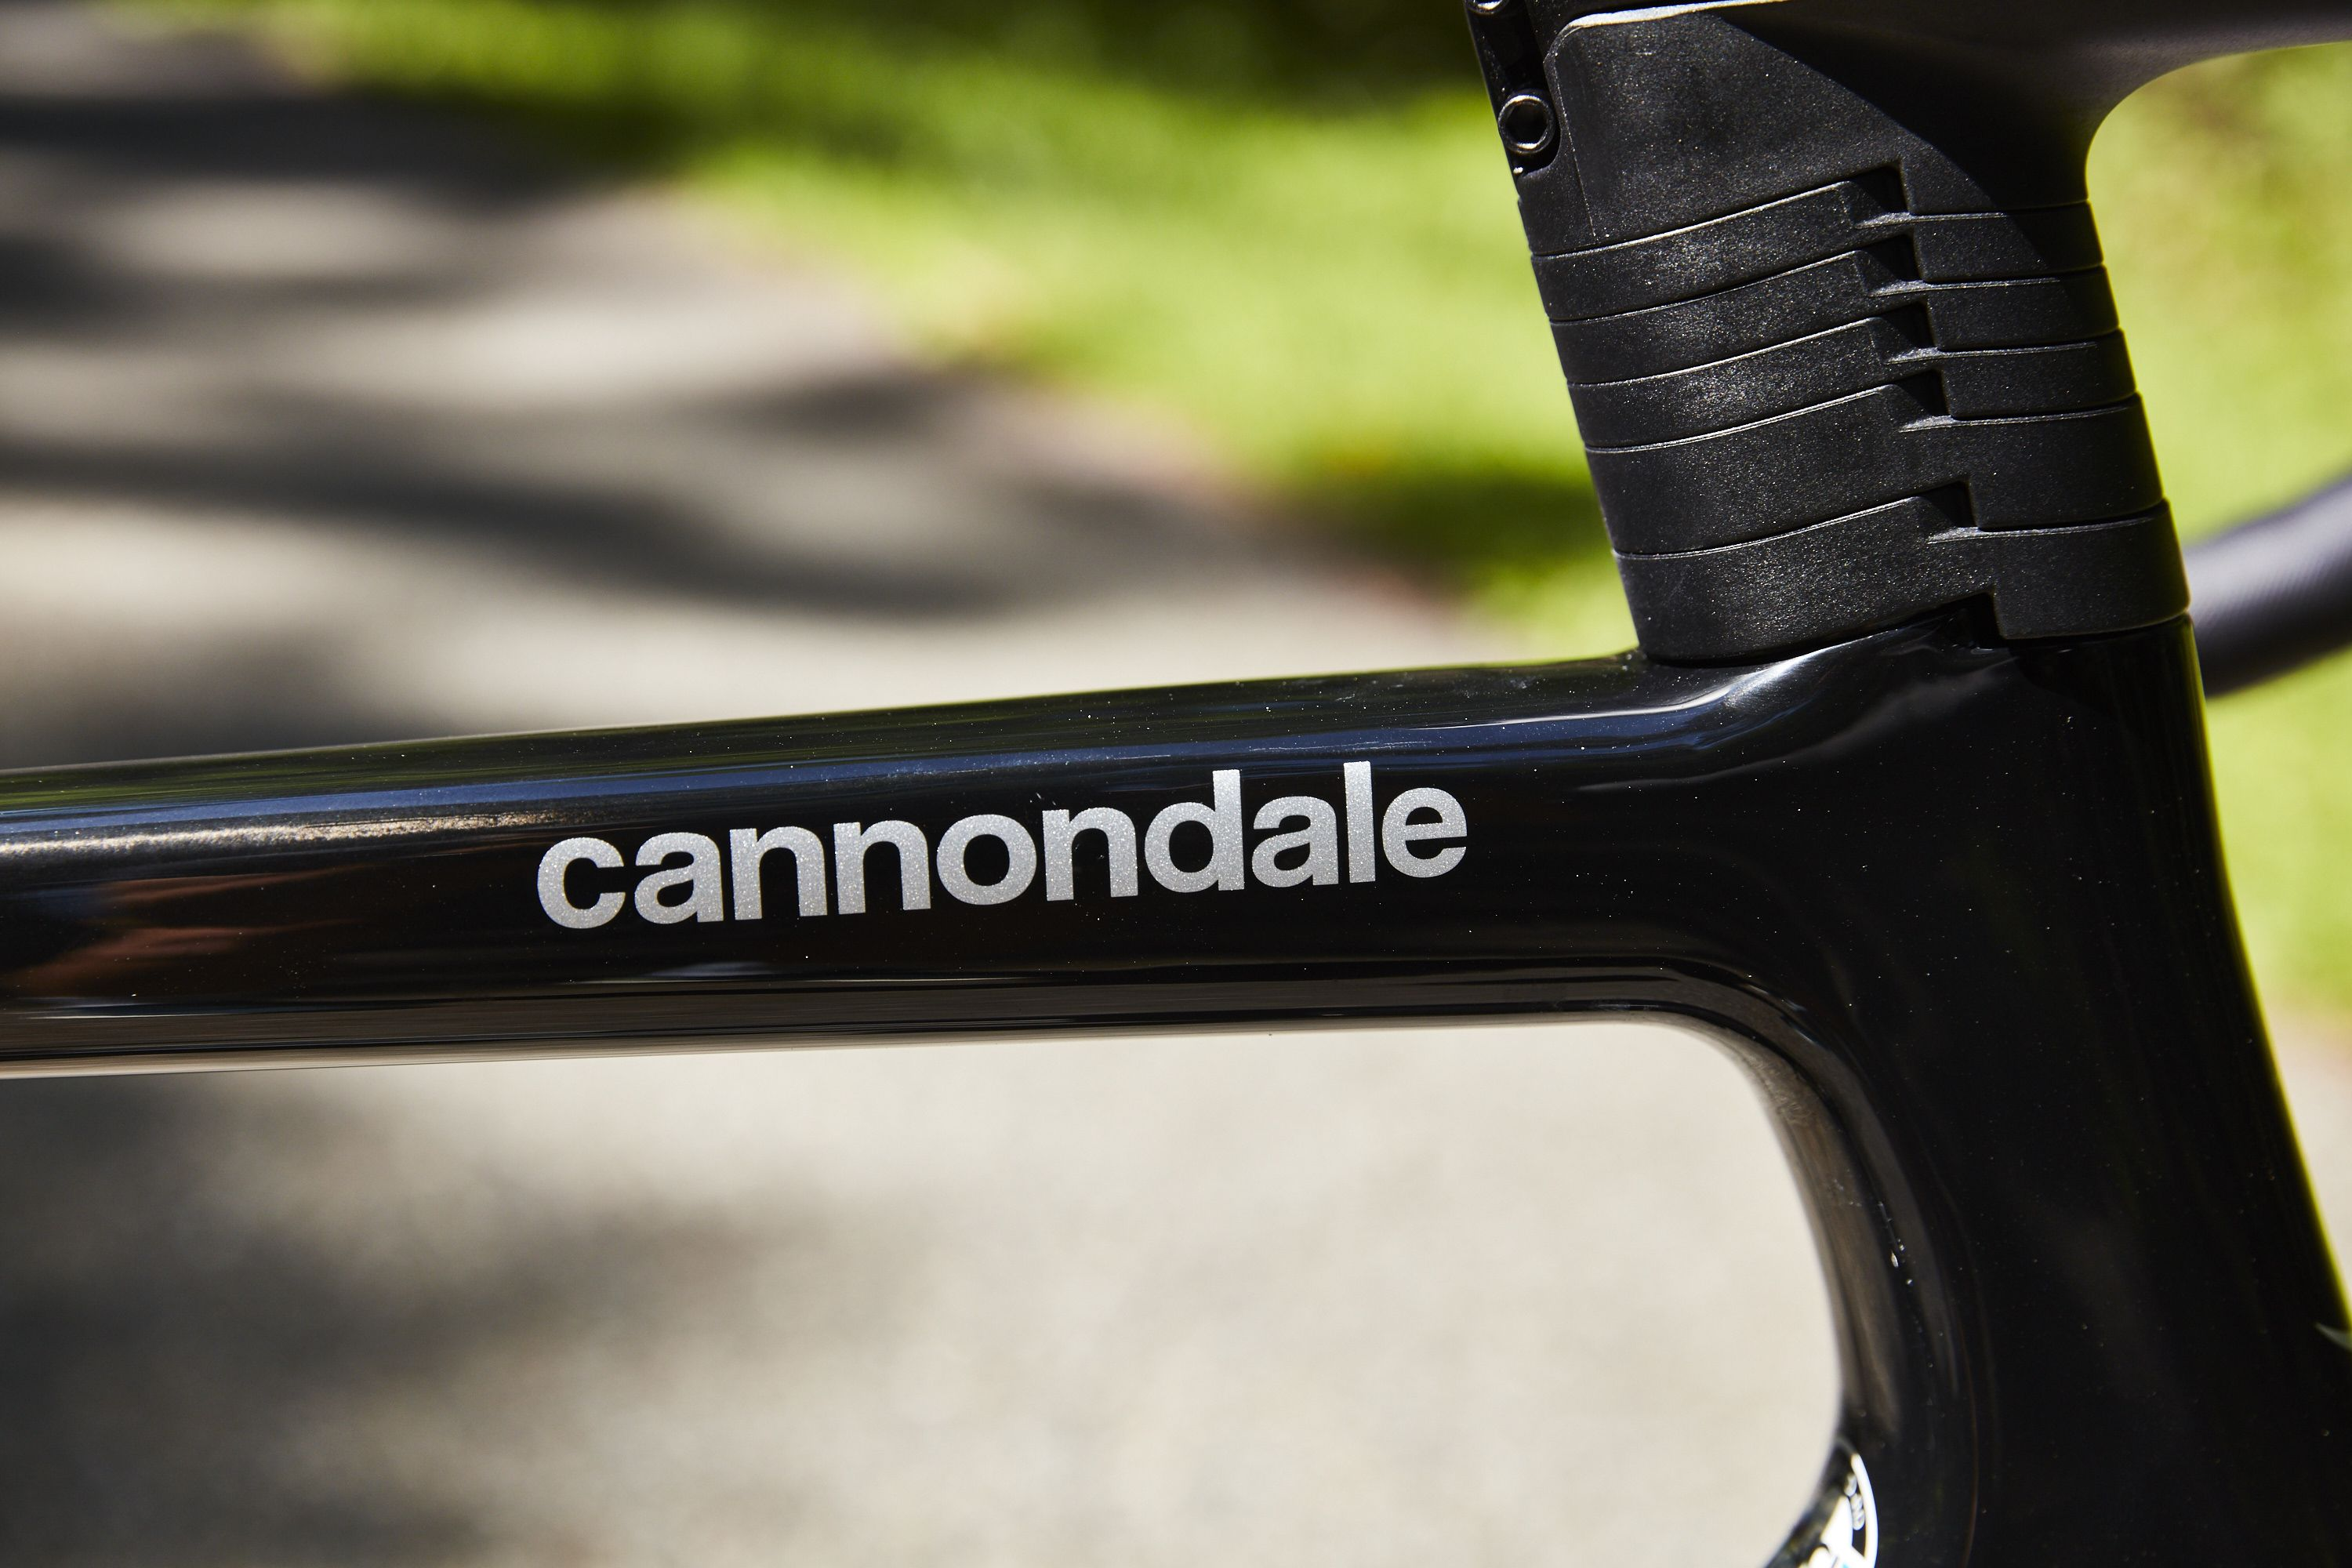 Cannondale Bike Reviews – 10 Best Cannondale Road Bikes